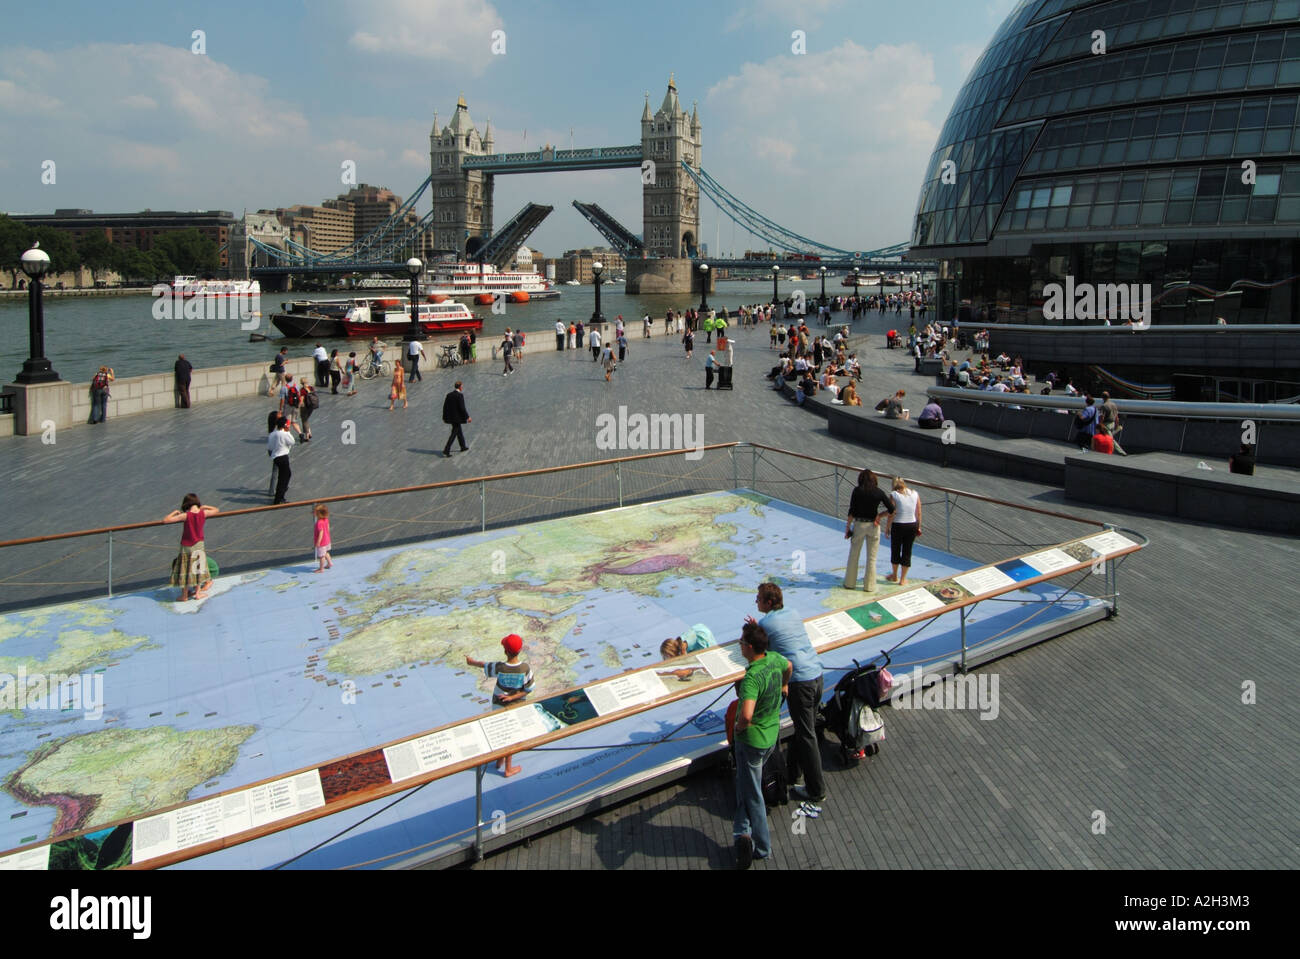 Riverside walkways at Greater London Authority City Hall by River Thames & Tower Bridge with world map display for kids to study - Stock Image